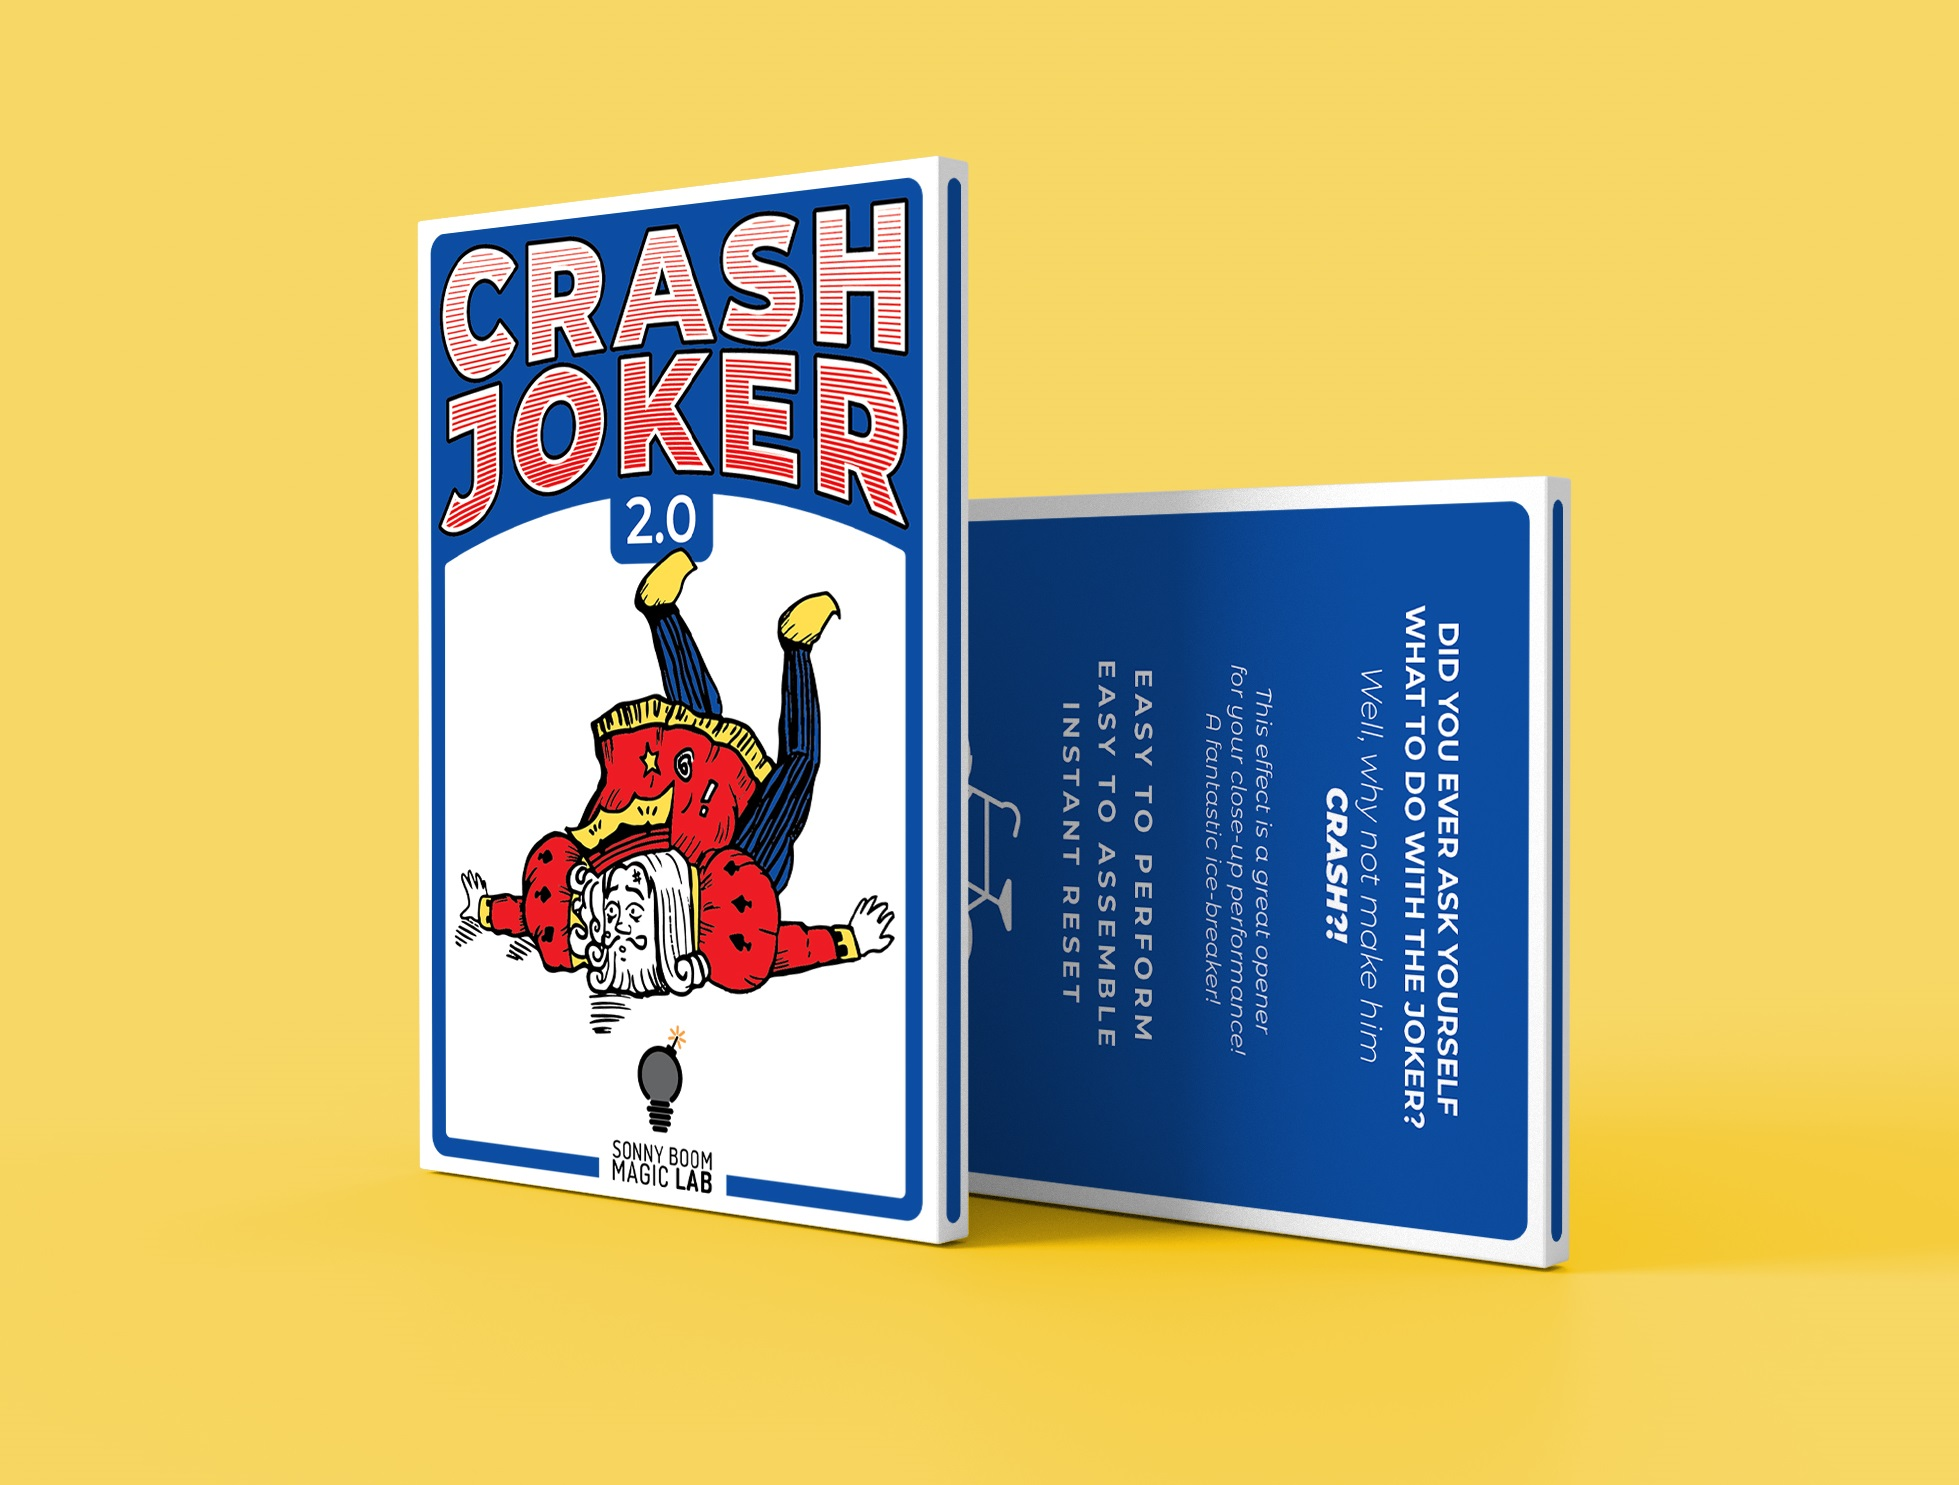 Our first new product is out: CRASK JOKER 2.0